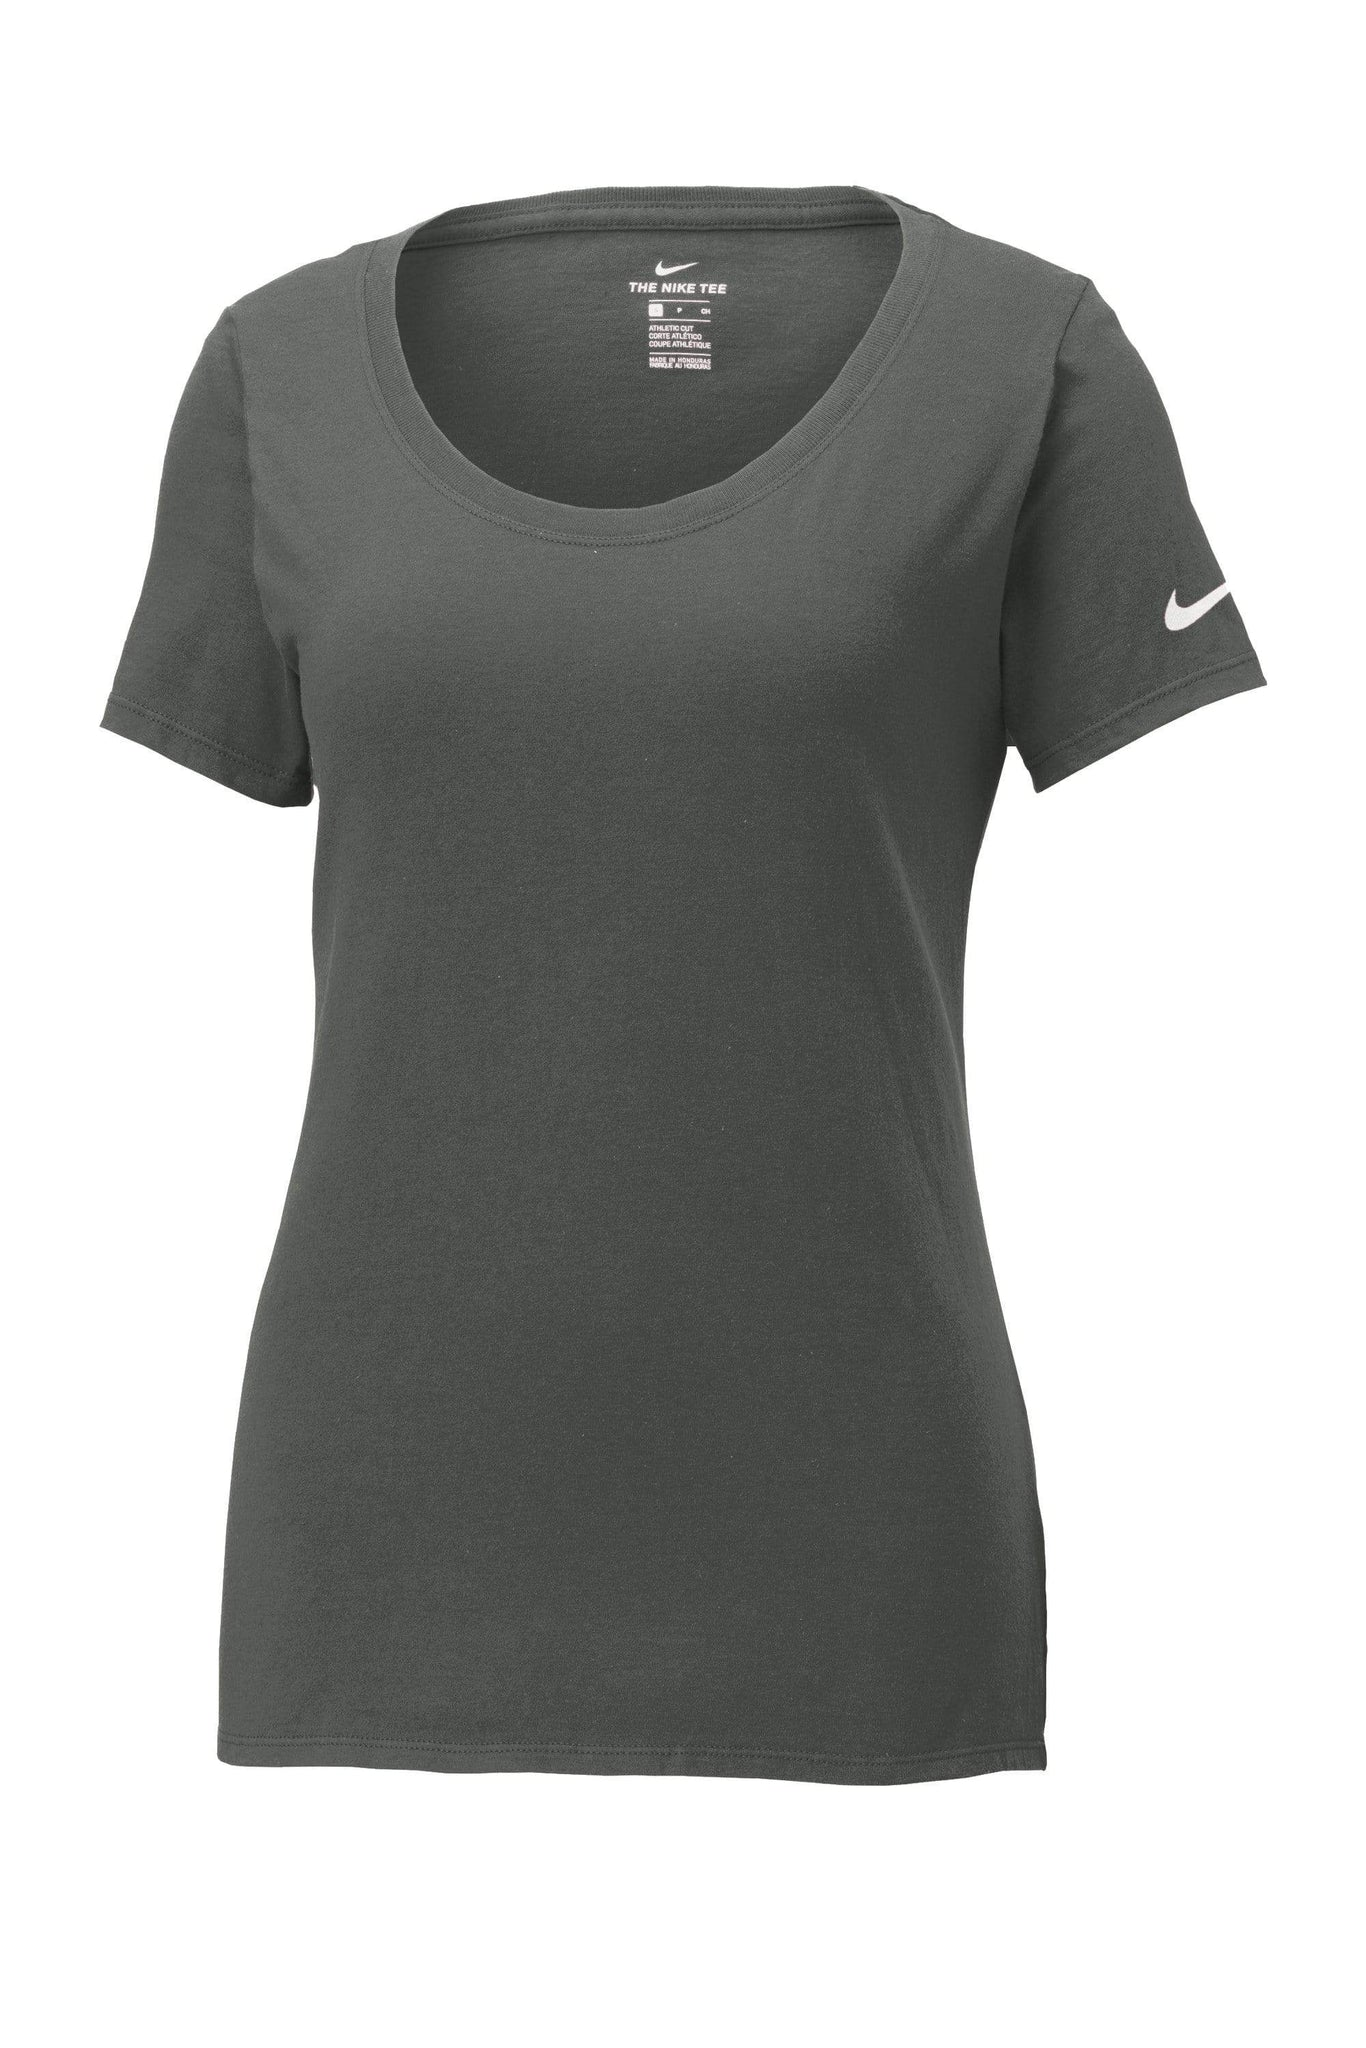 Nike T-shirts S / Anthracite Nike - Ladies Core Cotton Scoop Neck Tee